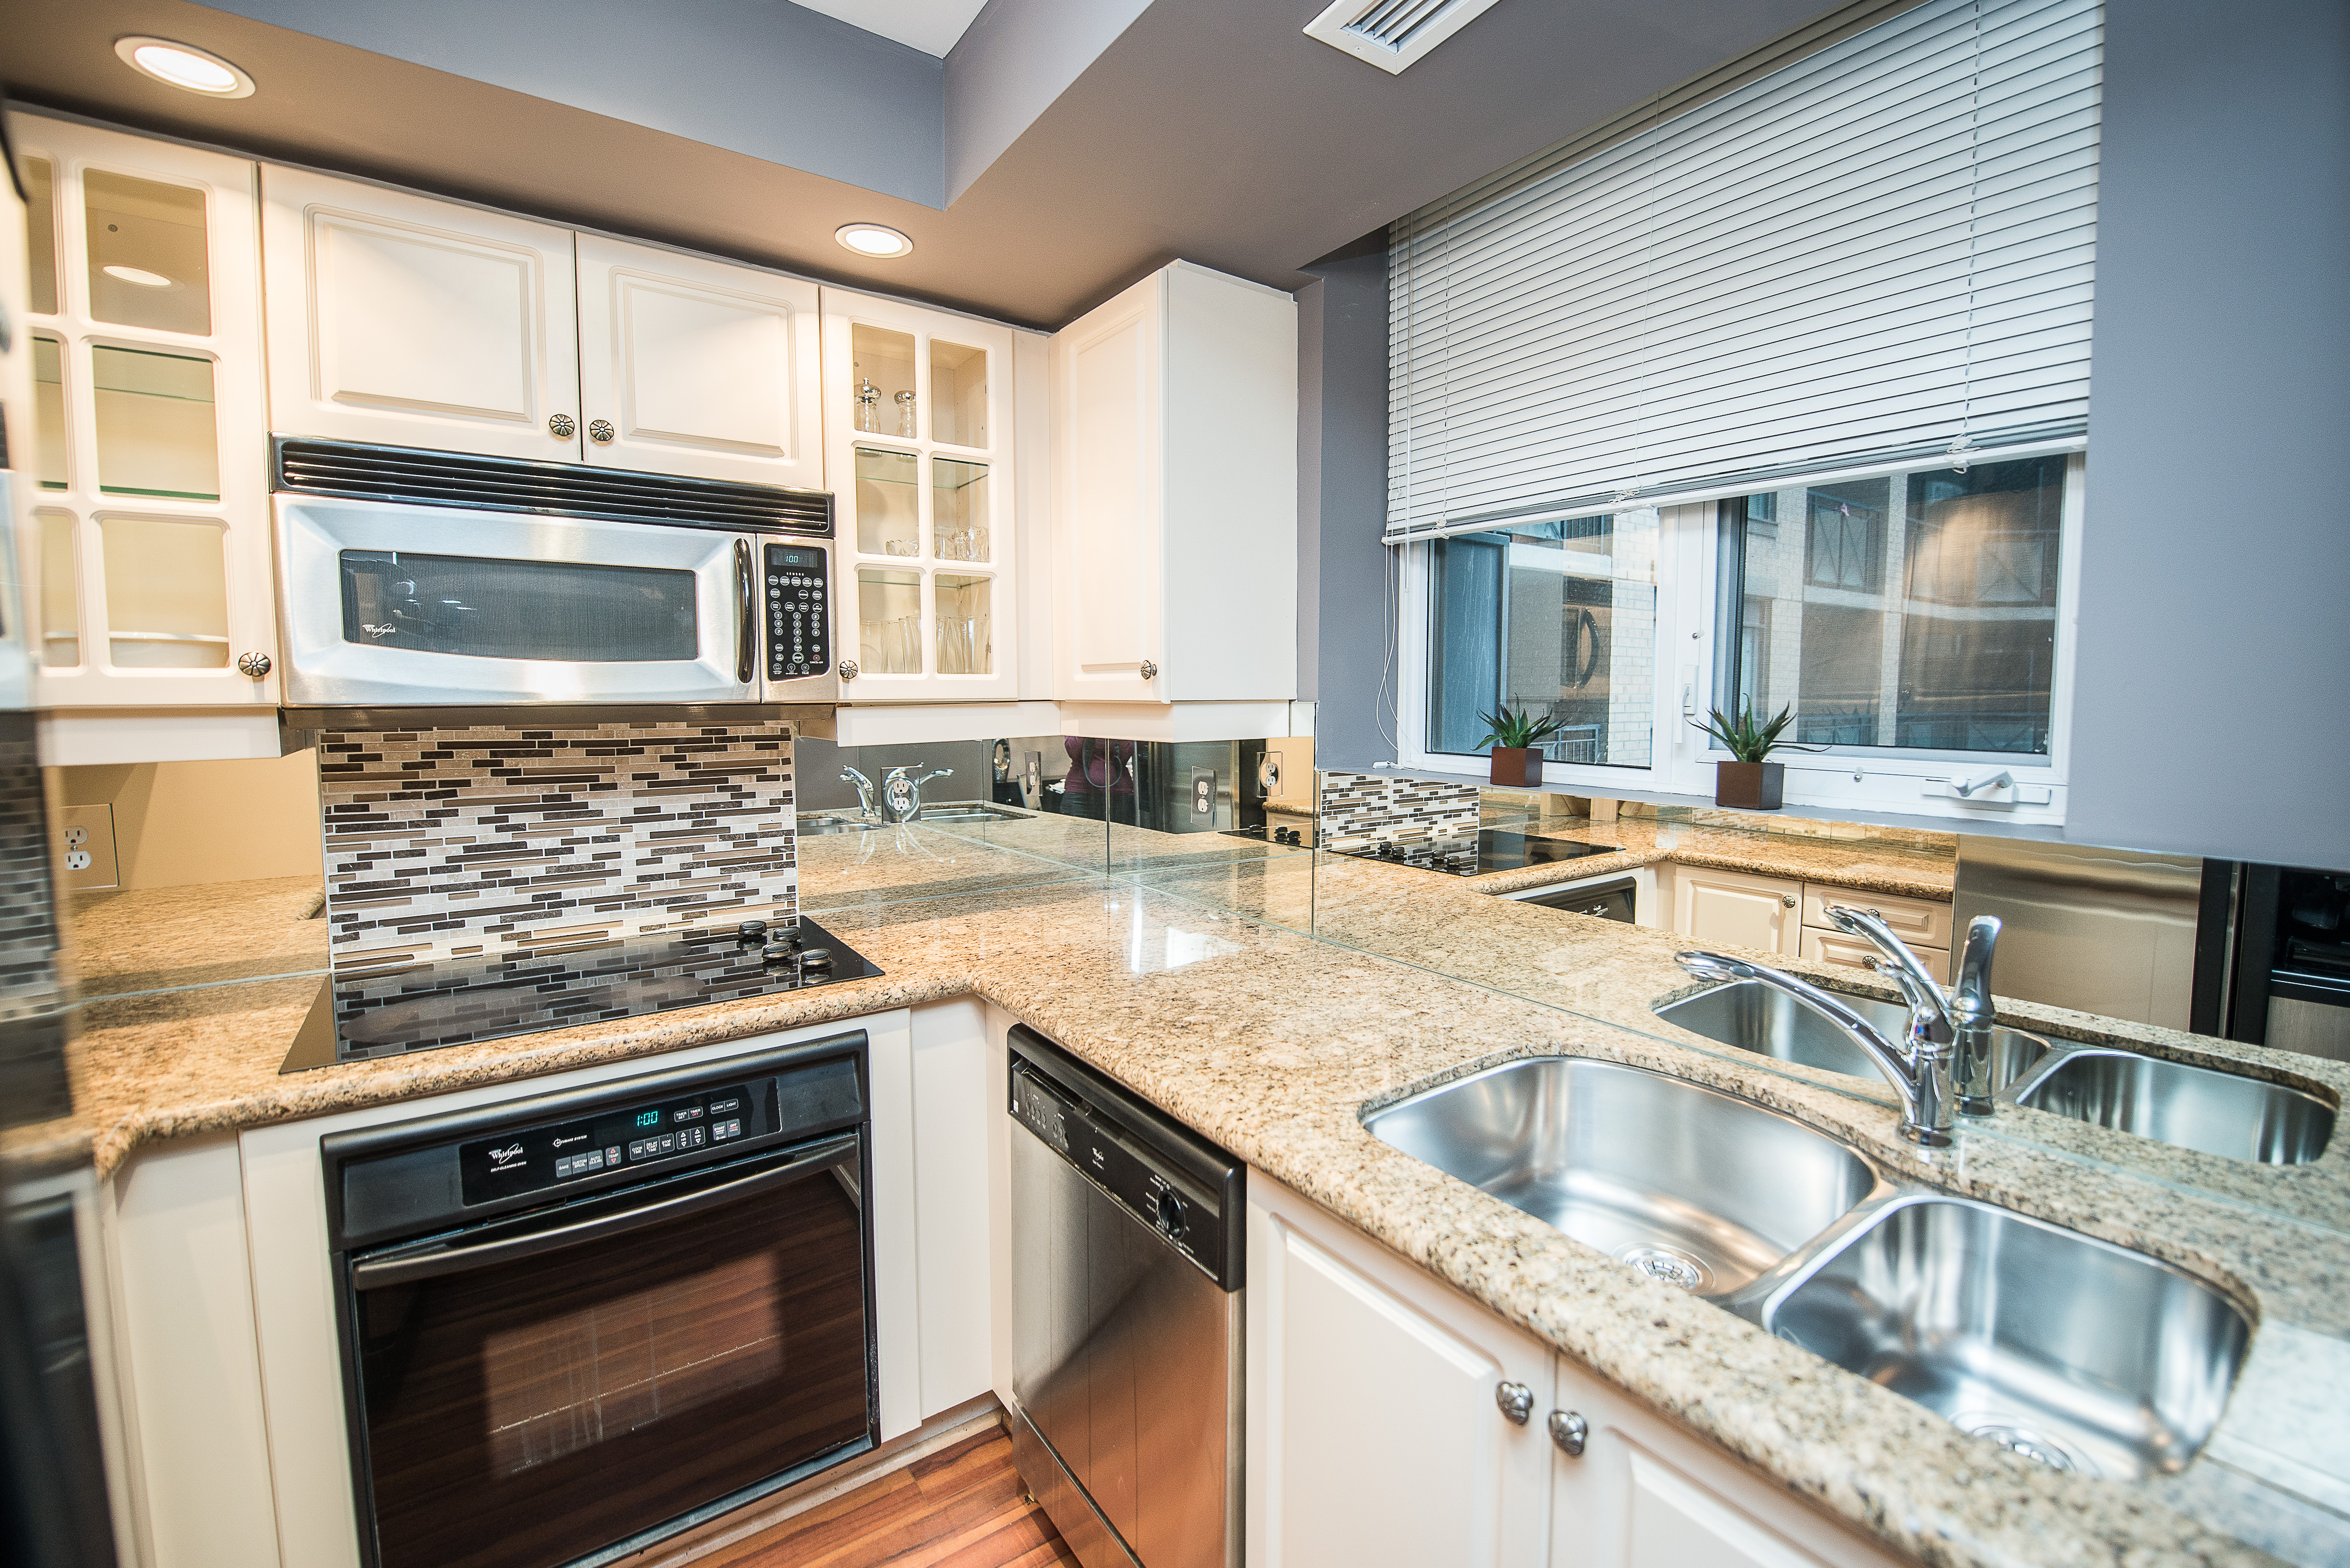 serviced apartments toronto financial district kitchen sink